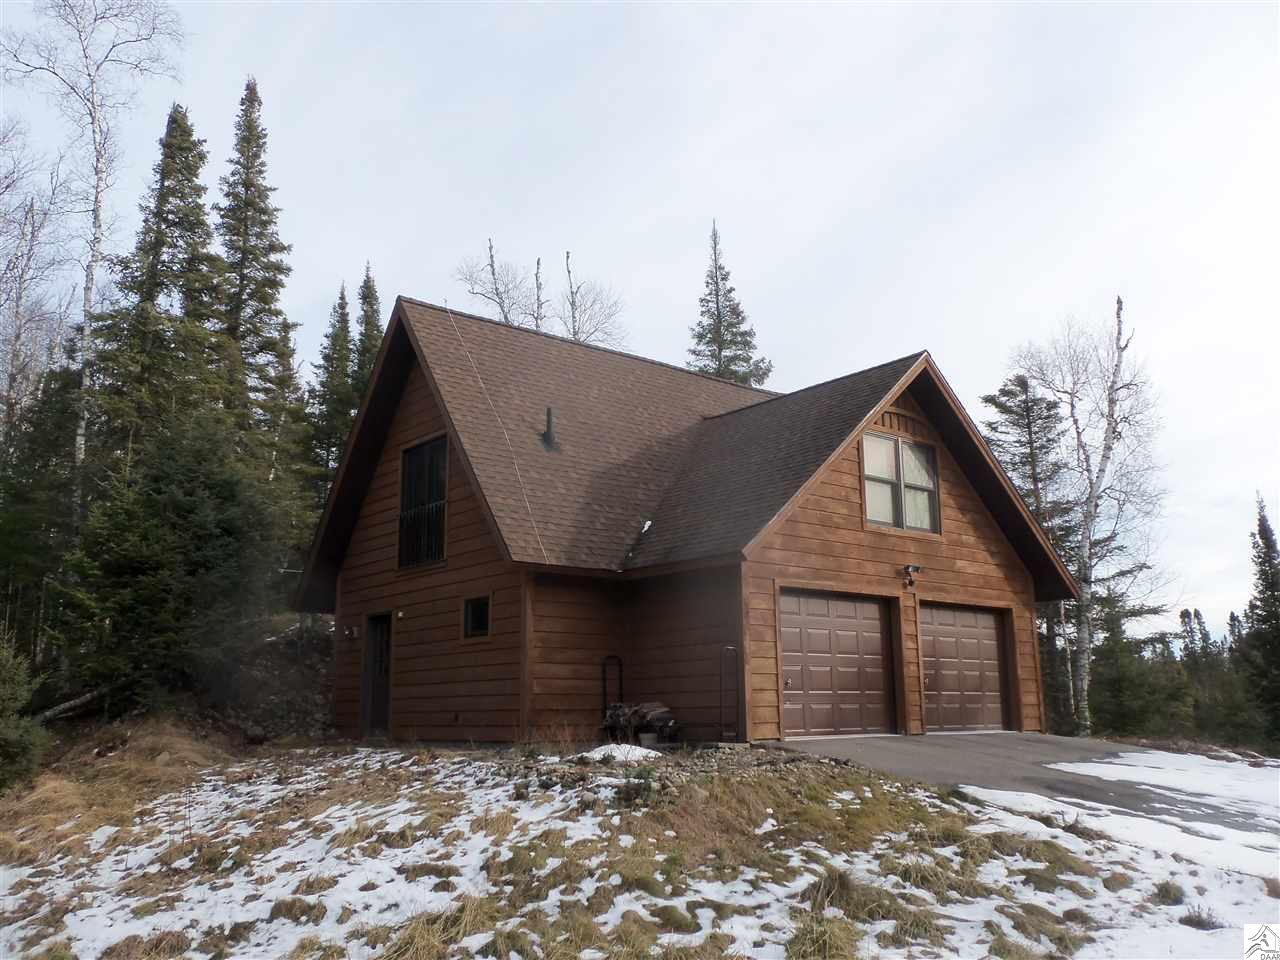 3869 Swanson Shores Rd, Ely, MN 55731